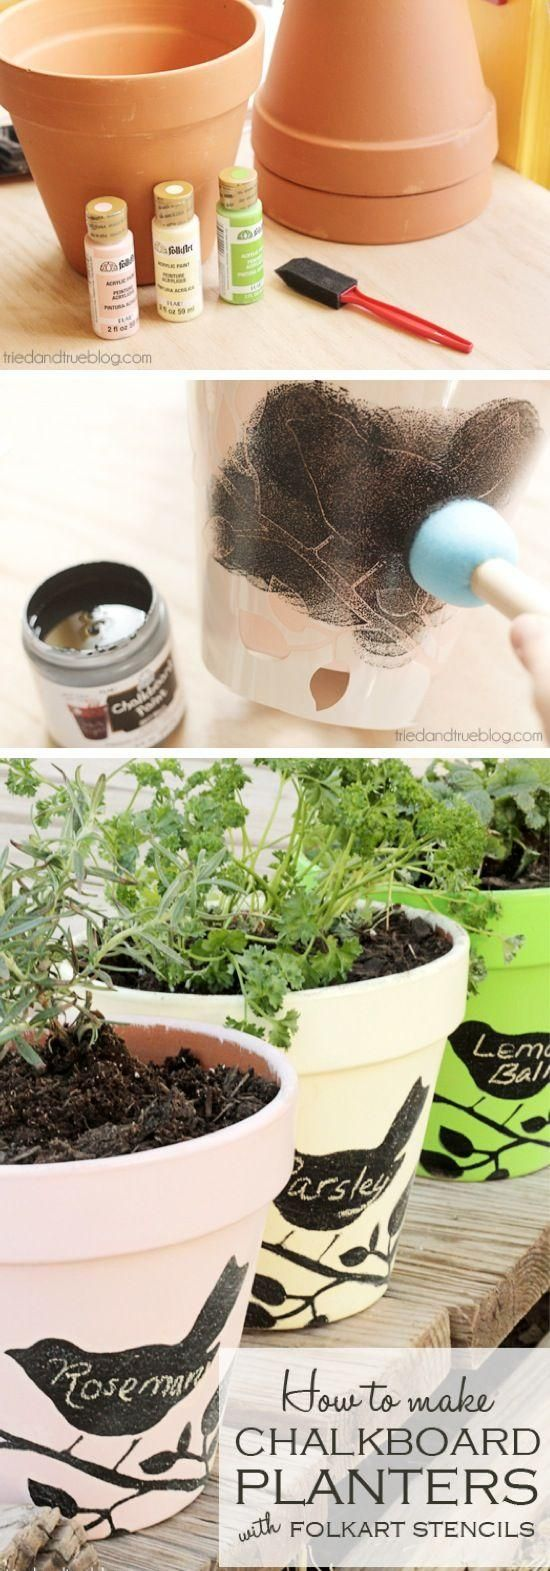 DIY Chalkboard Pots With Folkart Stencils And Paint